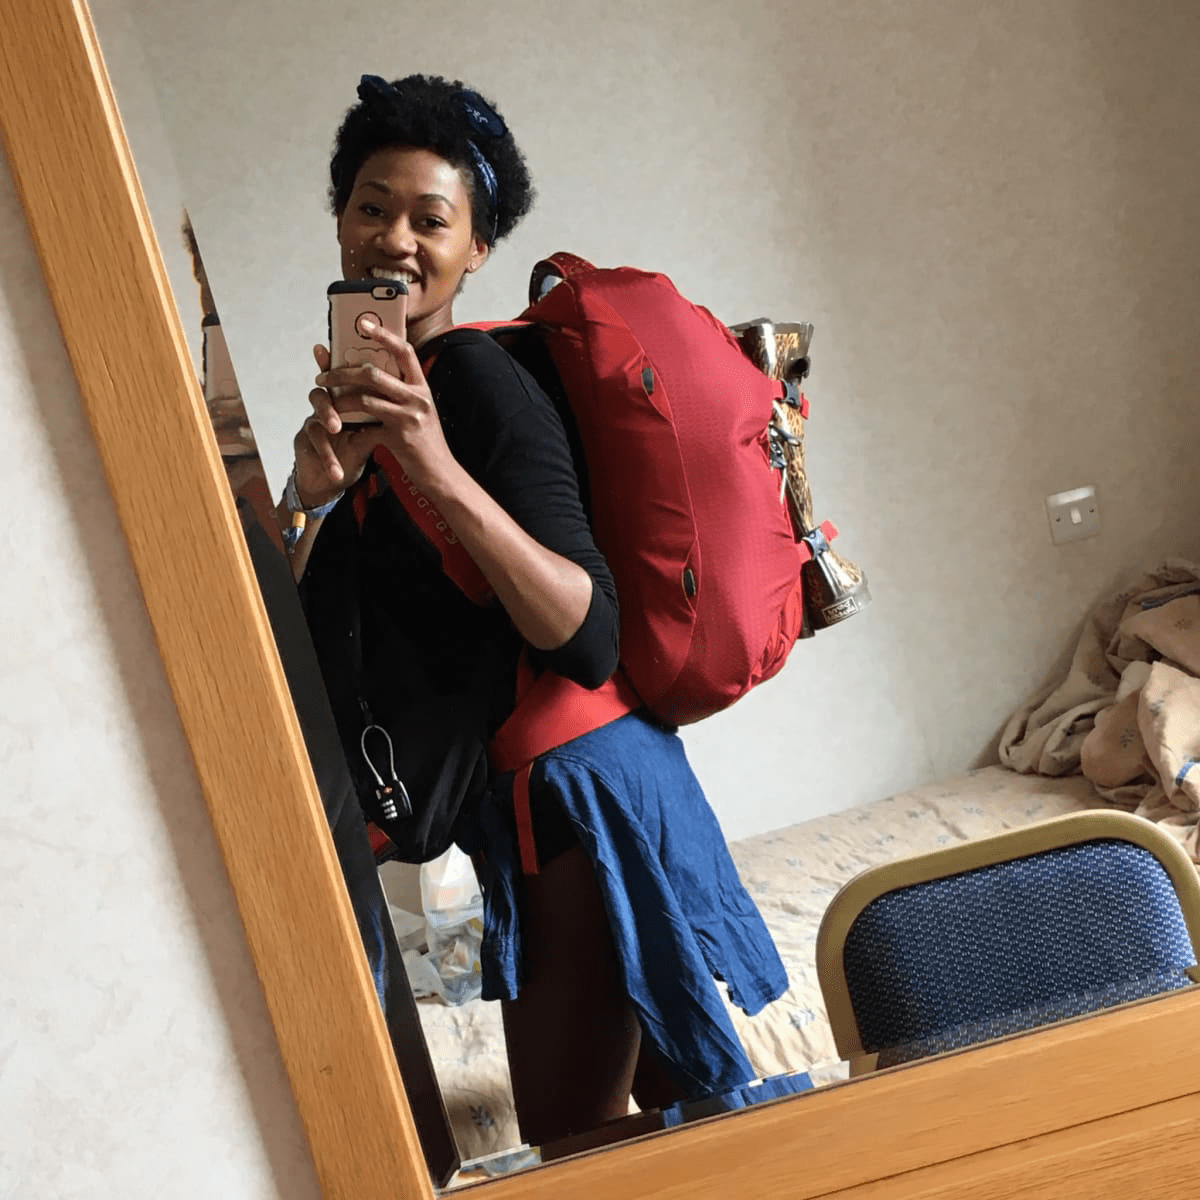 Black natural hair backpacker taking selfie in the mirror of a hotel room wearing a red Osprey backpack and a black bag